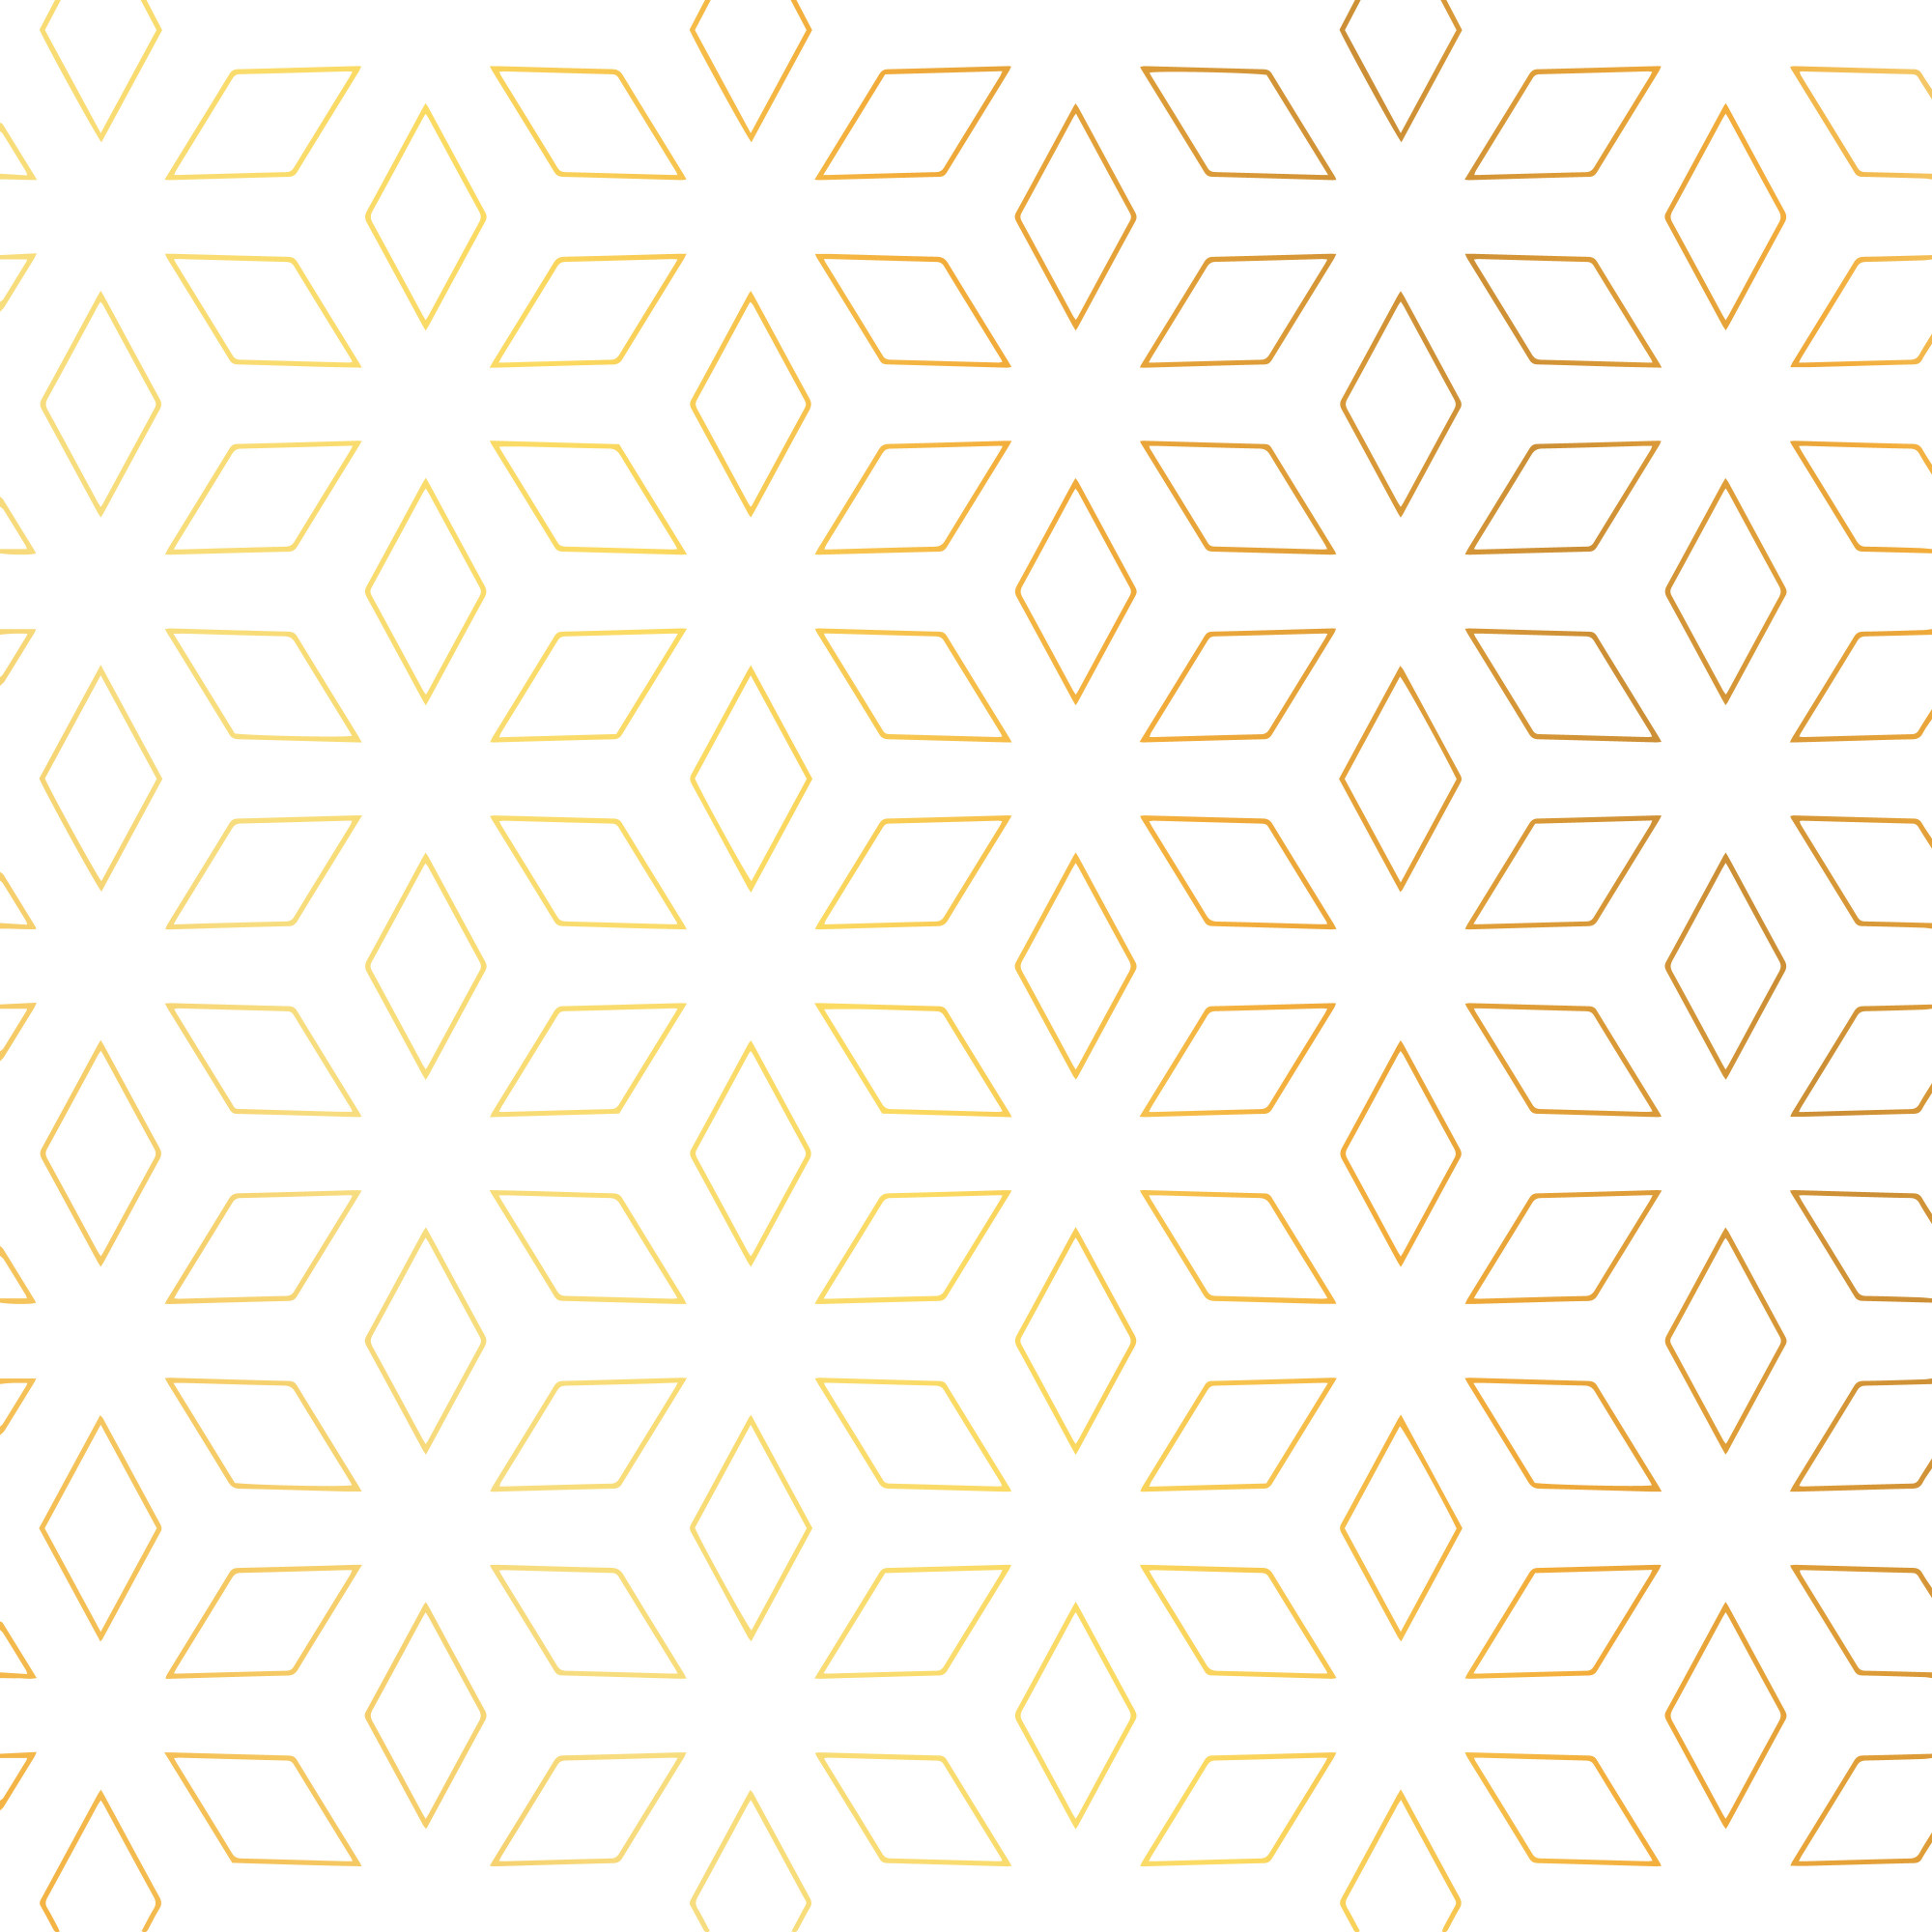 Diamond shape golden pattern vector background